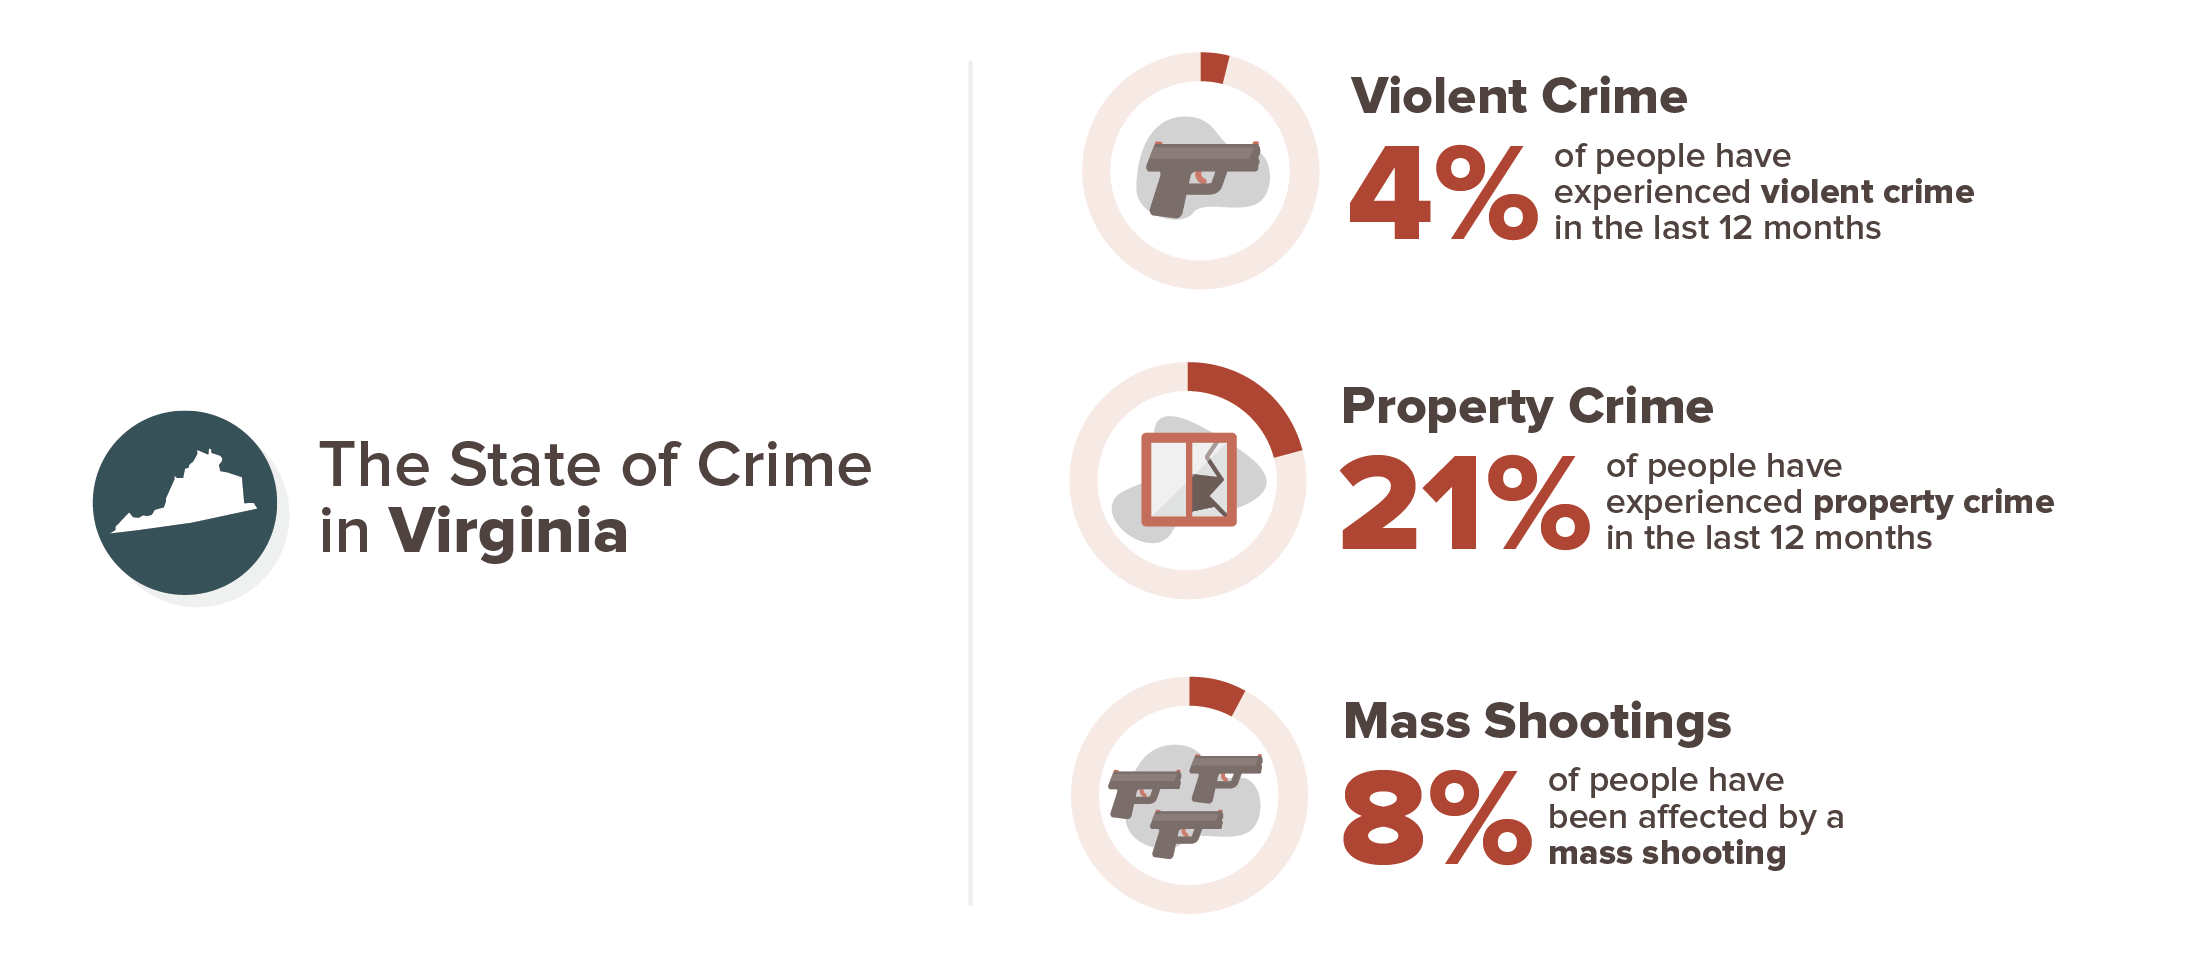 Virginia crime experience infographic